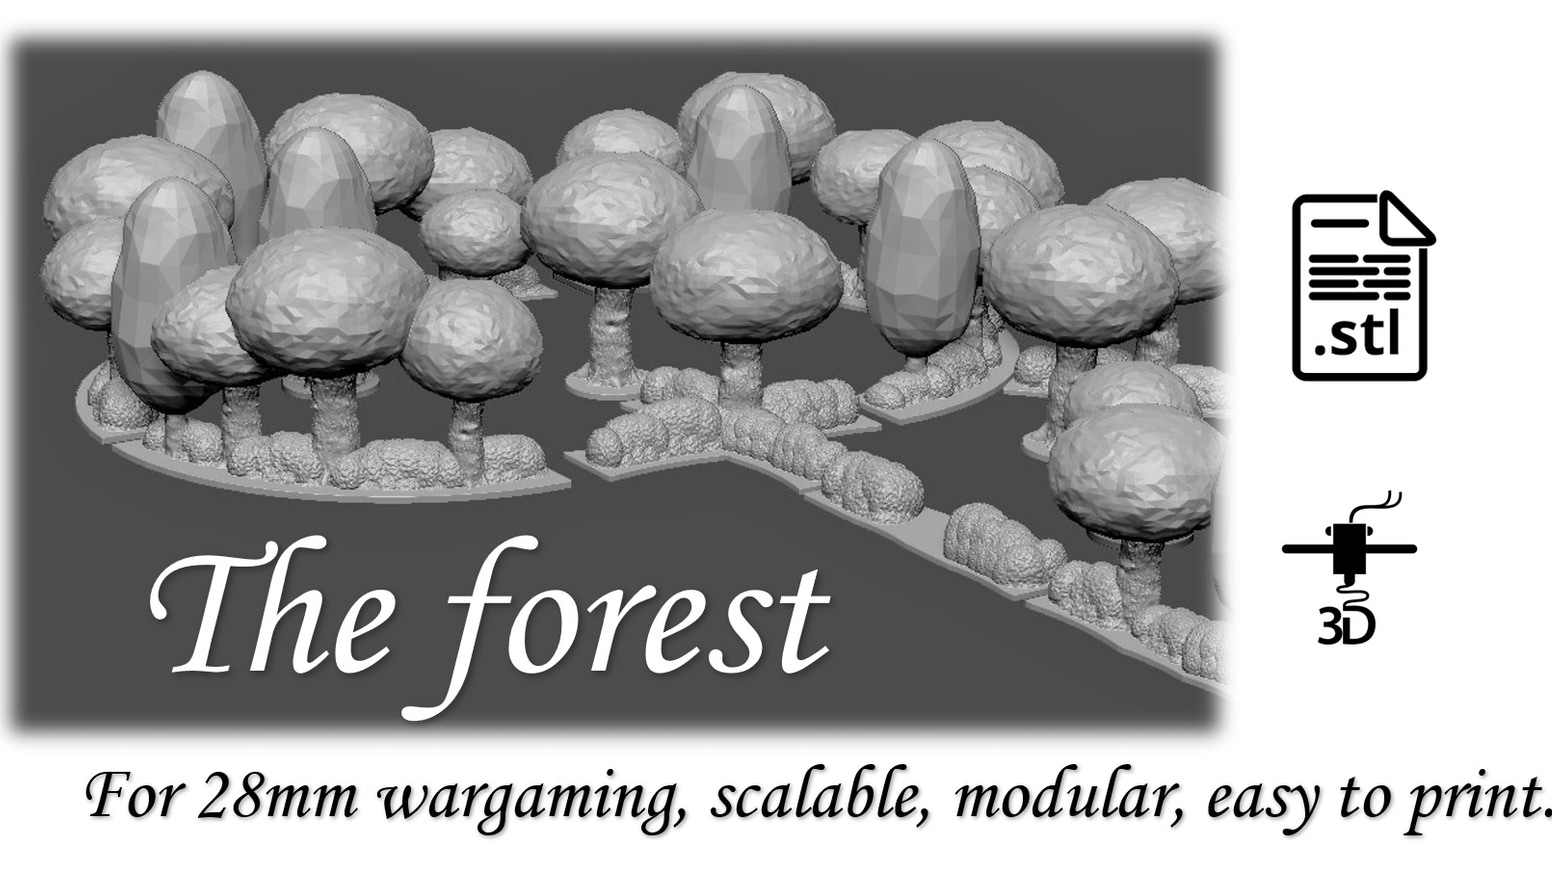 Forest for 28mm wargaming for 3D printing.